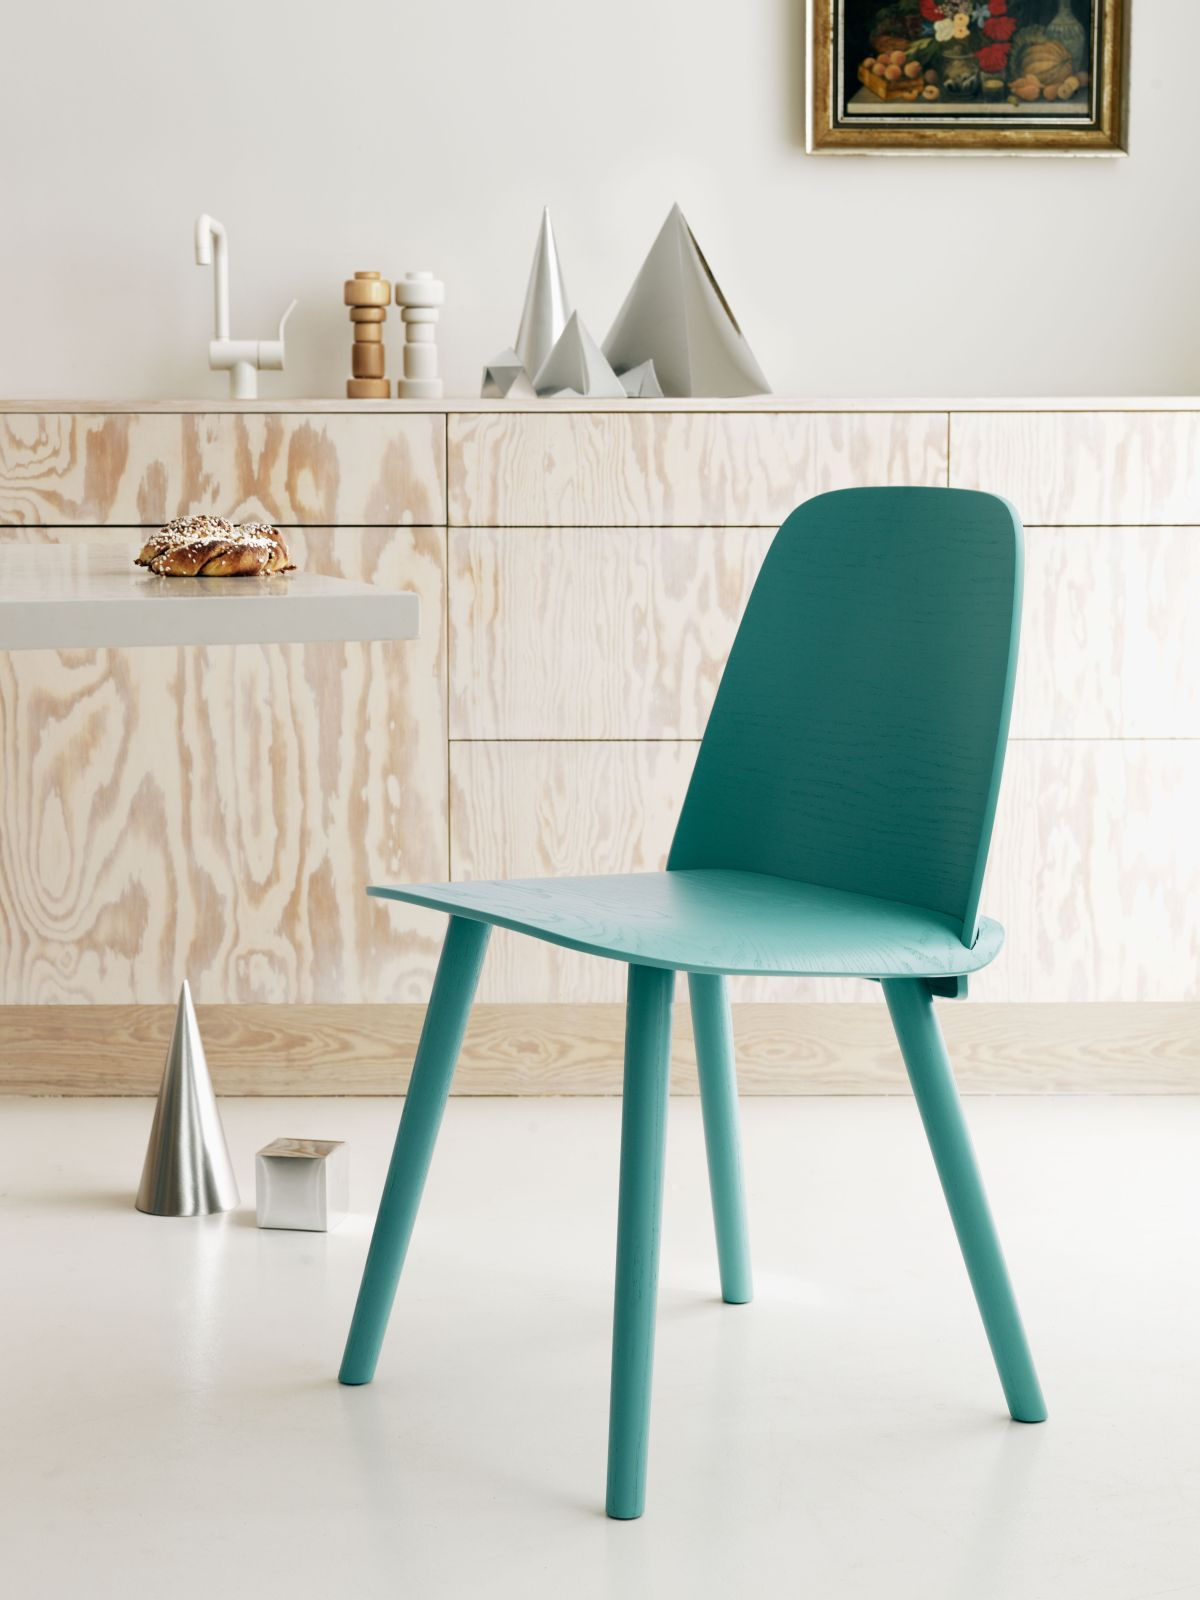 Scandinavian Style Chair How To Mix Scandinavian Designs With What You Already Have